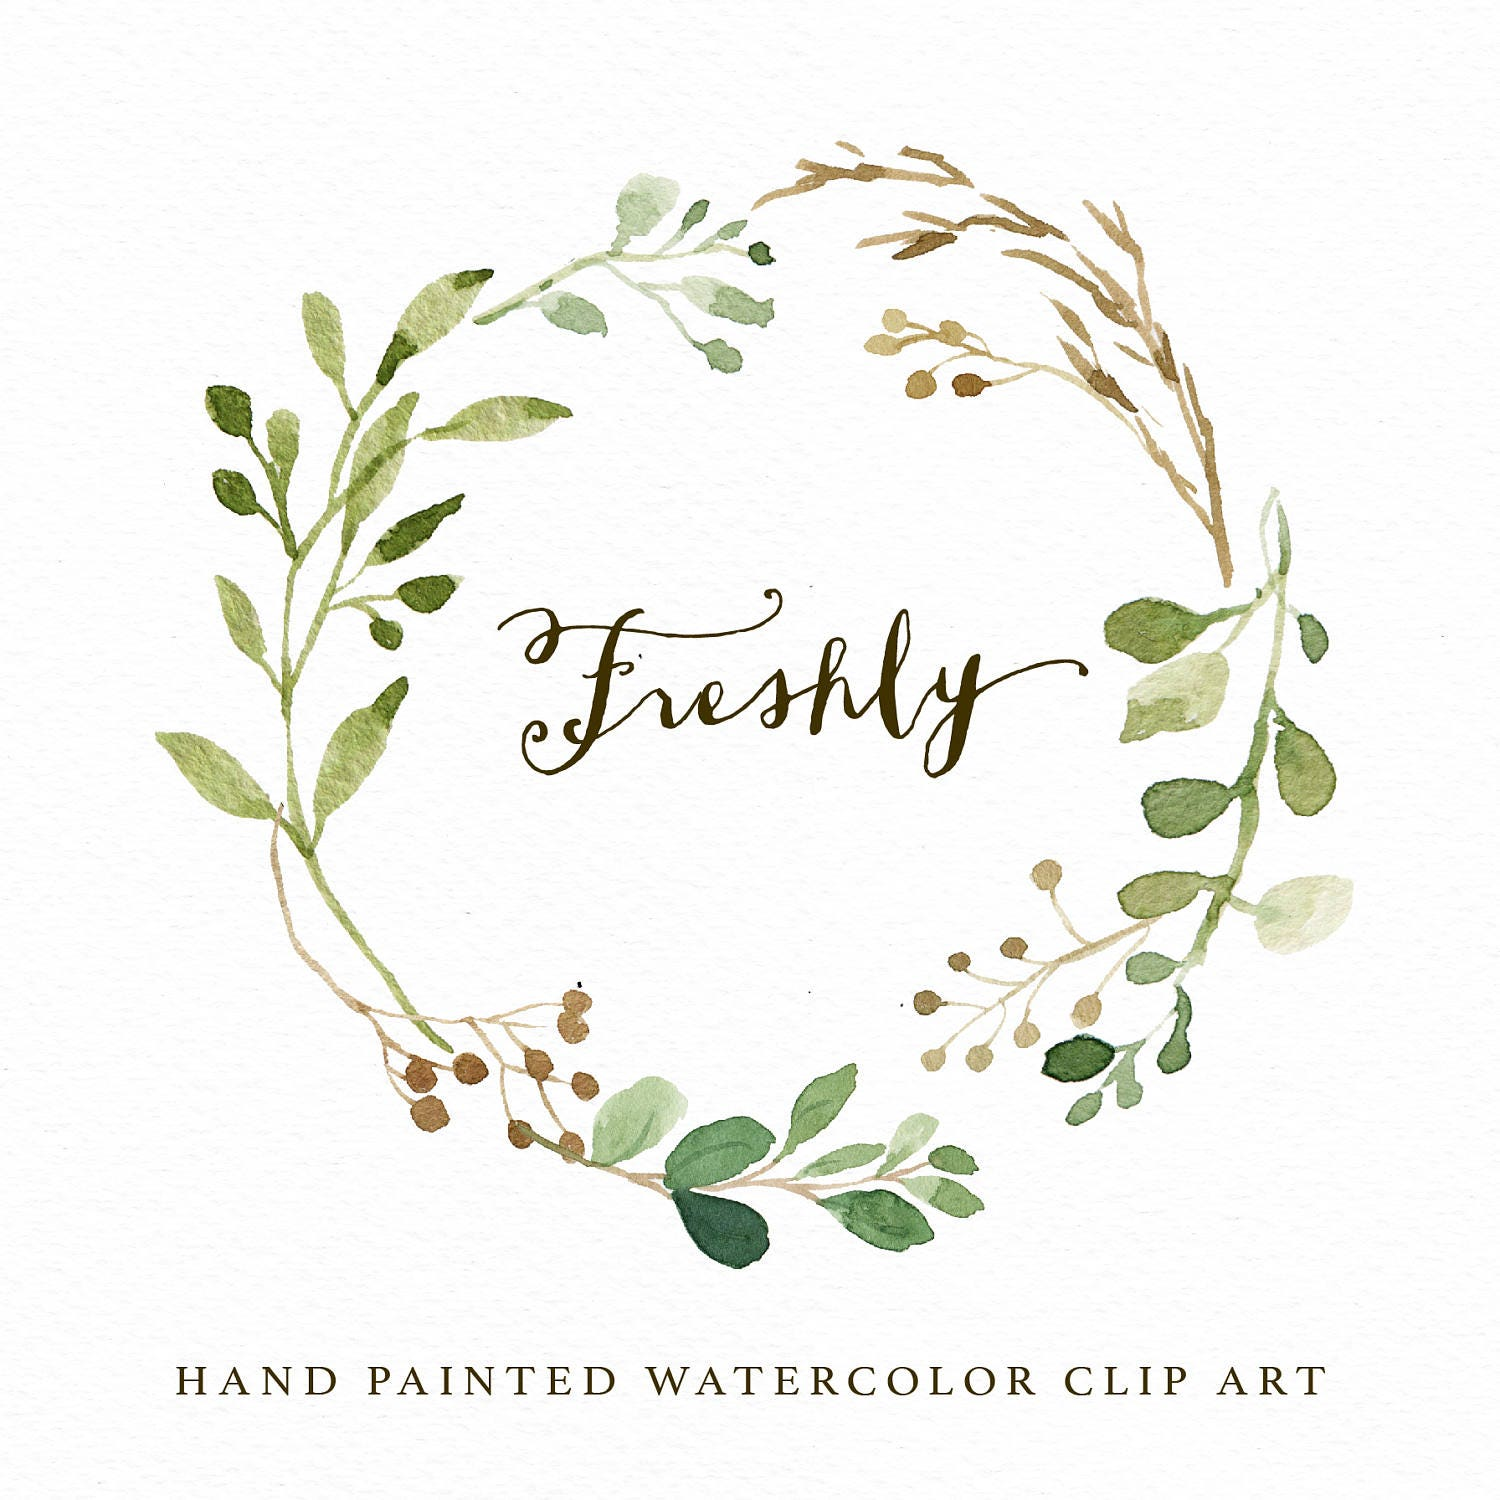 watercolor leaf wreath clipart freshly hand painted wedding etsy